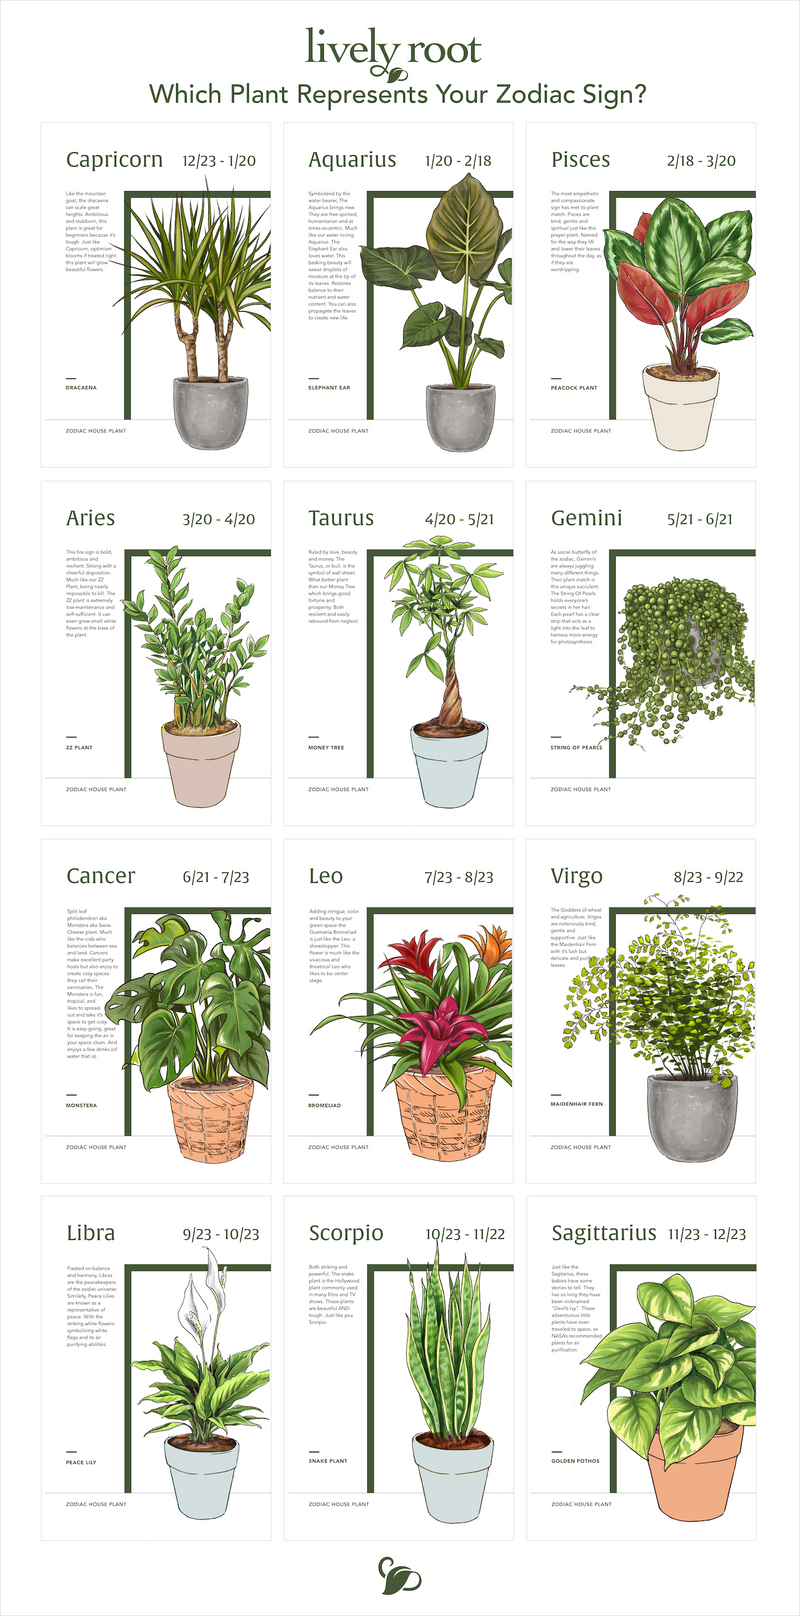 Which Plant Represents Your Zodiac Sign?